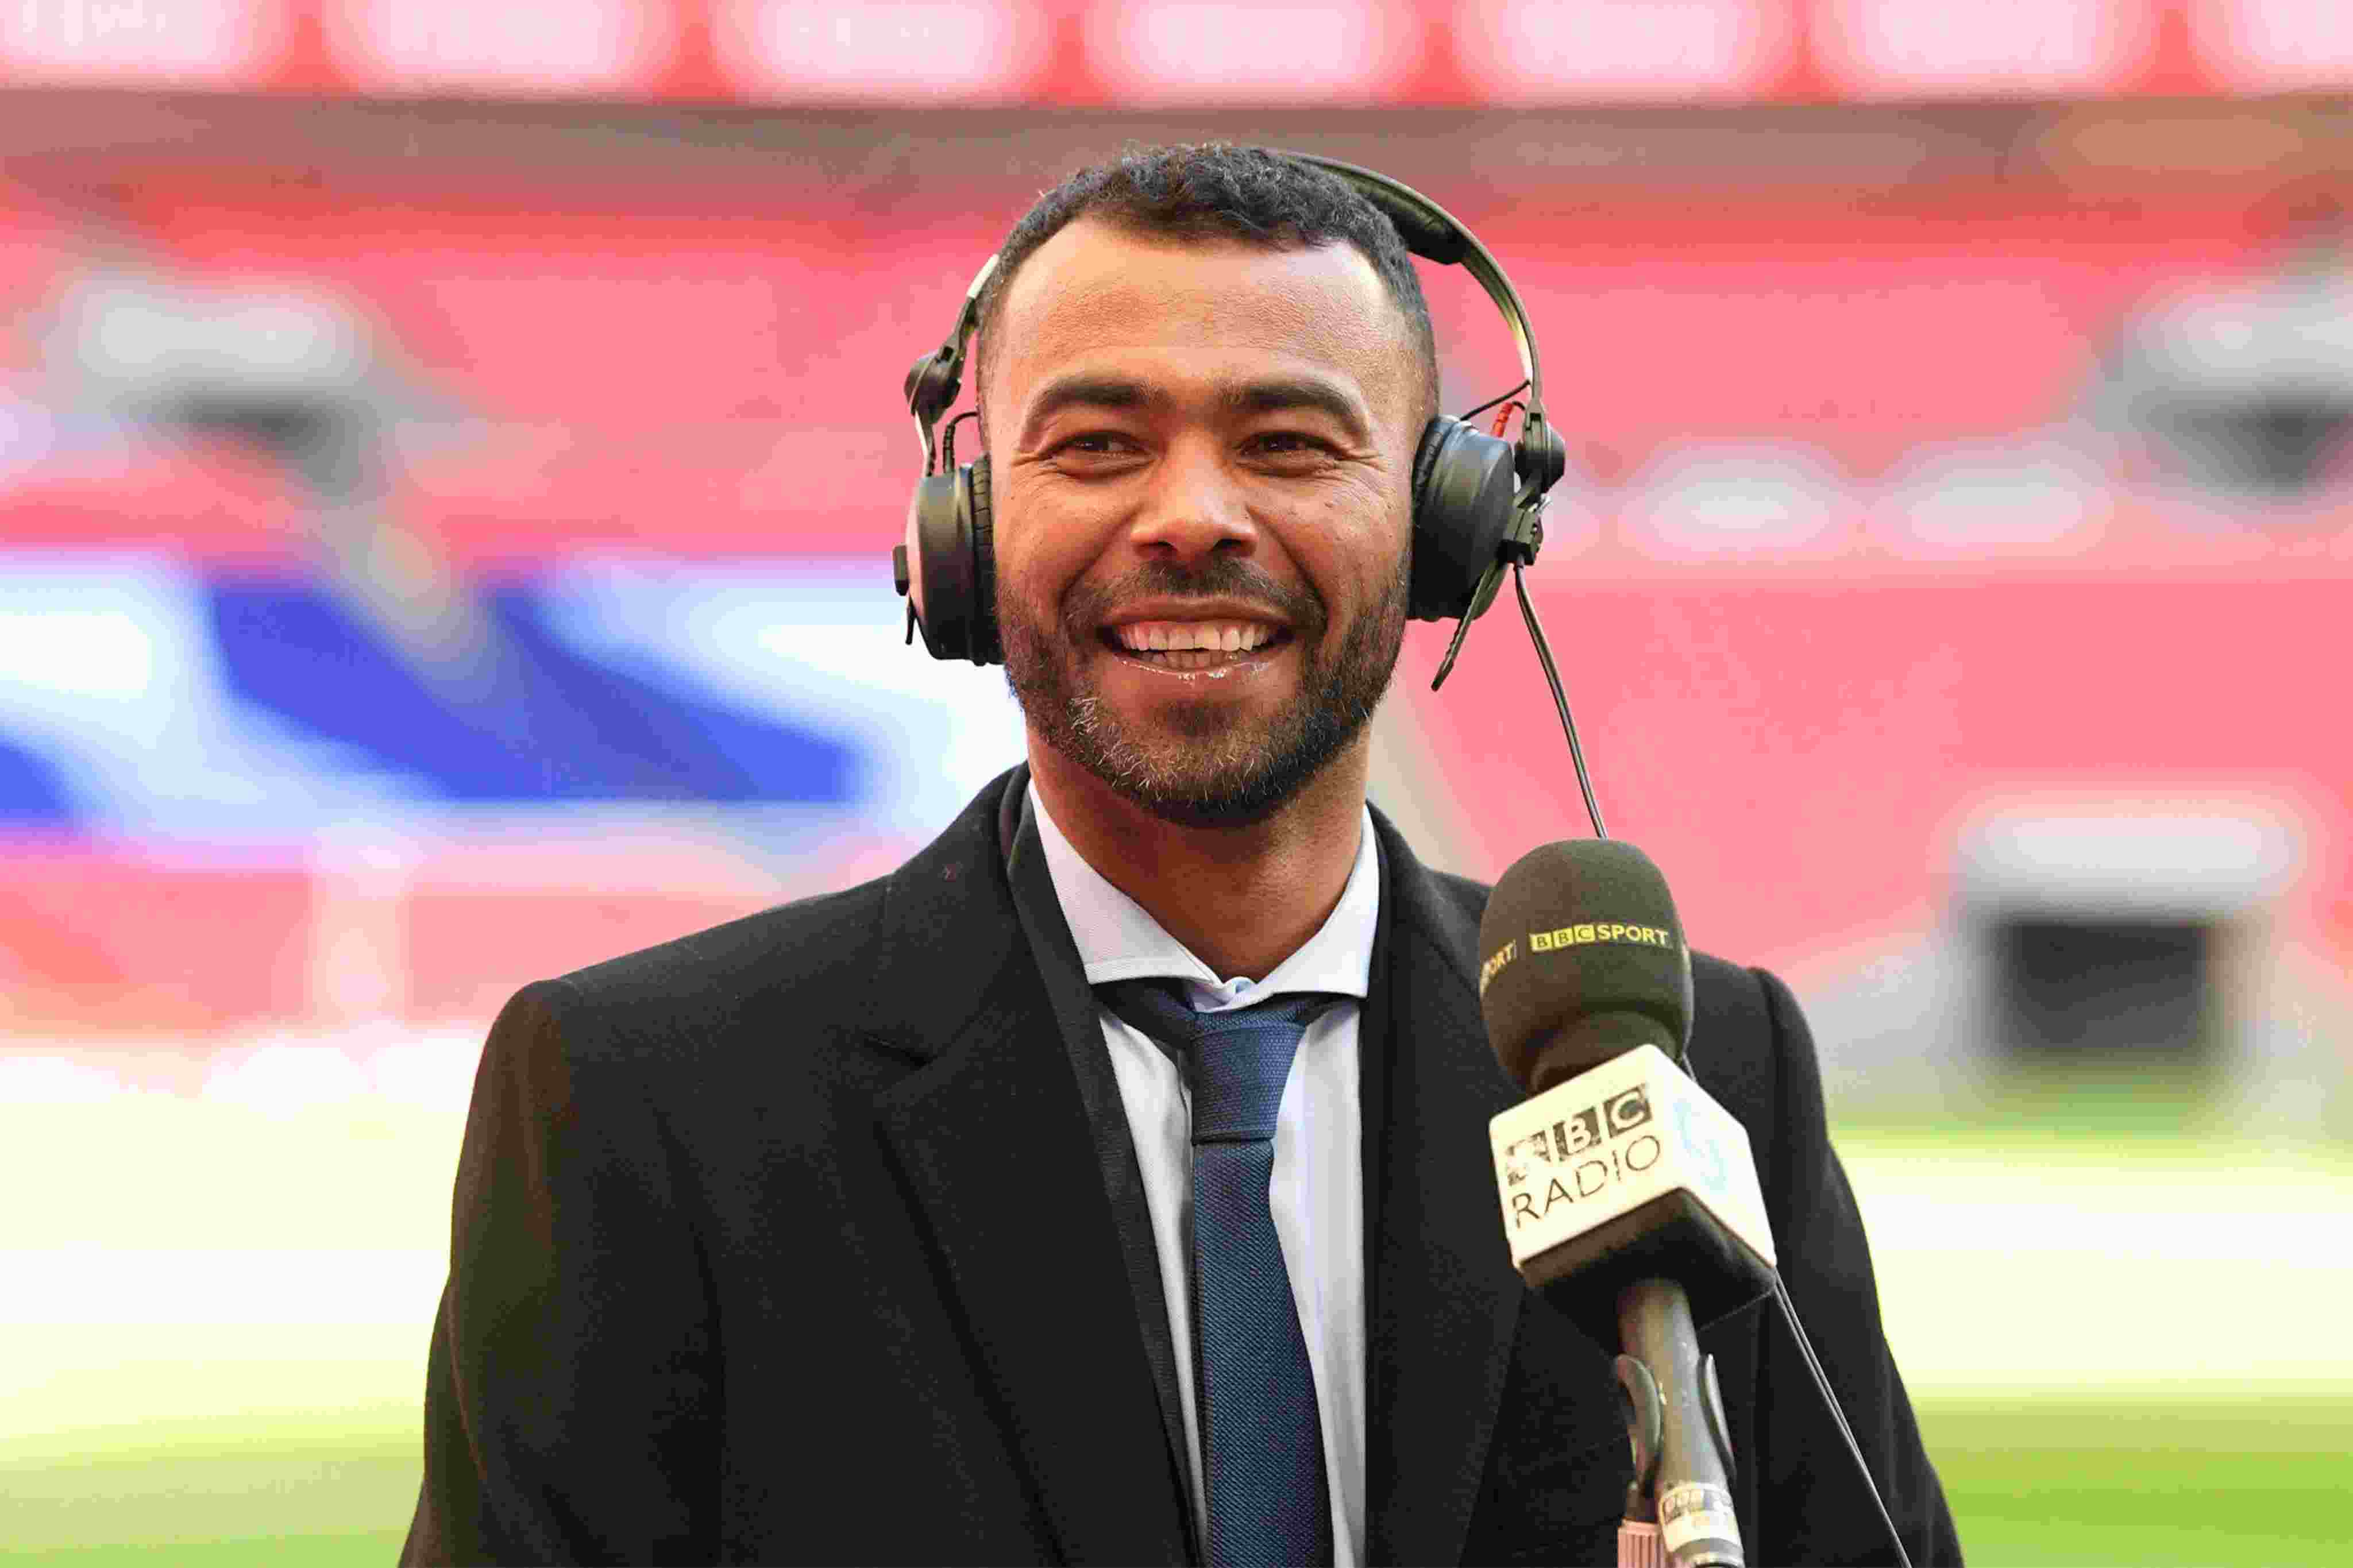 Alan Shearer & Ashley Cole single out Chelsea player who made Man City 'struggle'